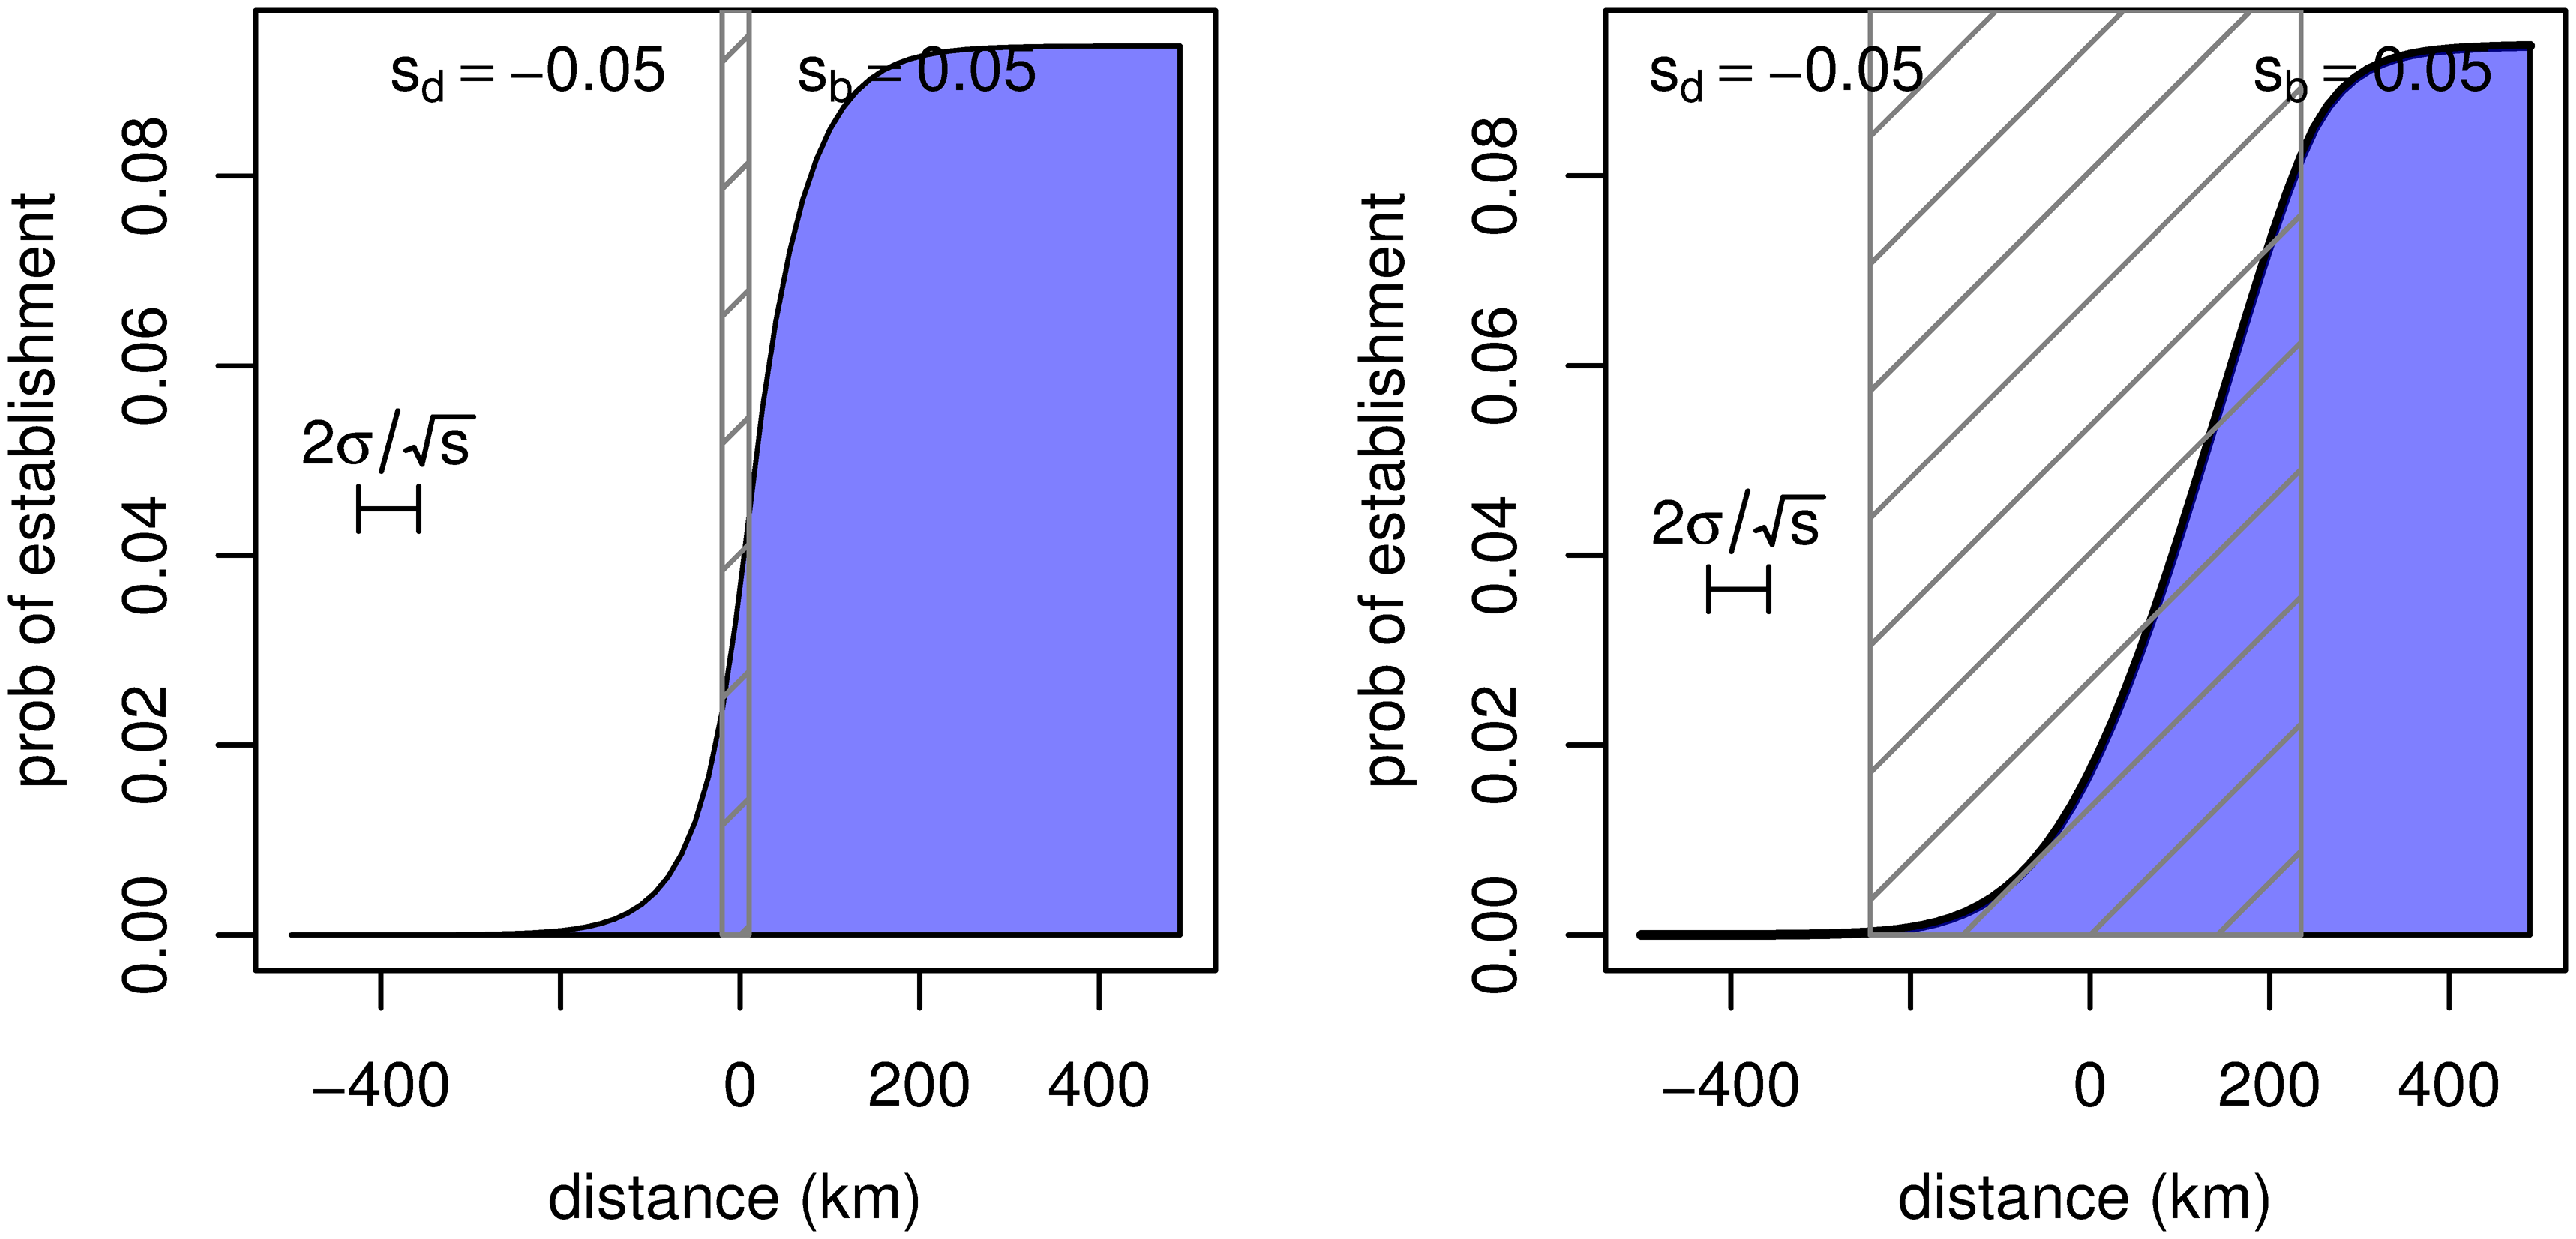 The probability of establishment of a new mutant allele as a function of distance from the edge of the region where it is beneficial, in an abrupt transition (left) and a gradual transition (right).